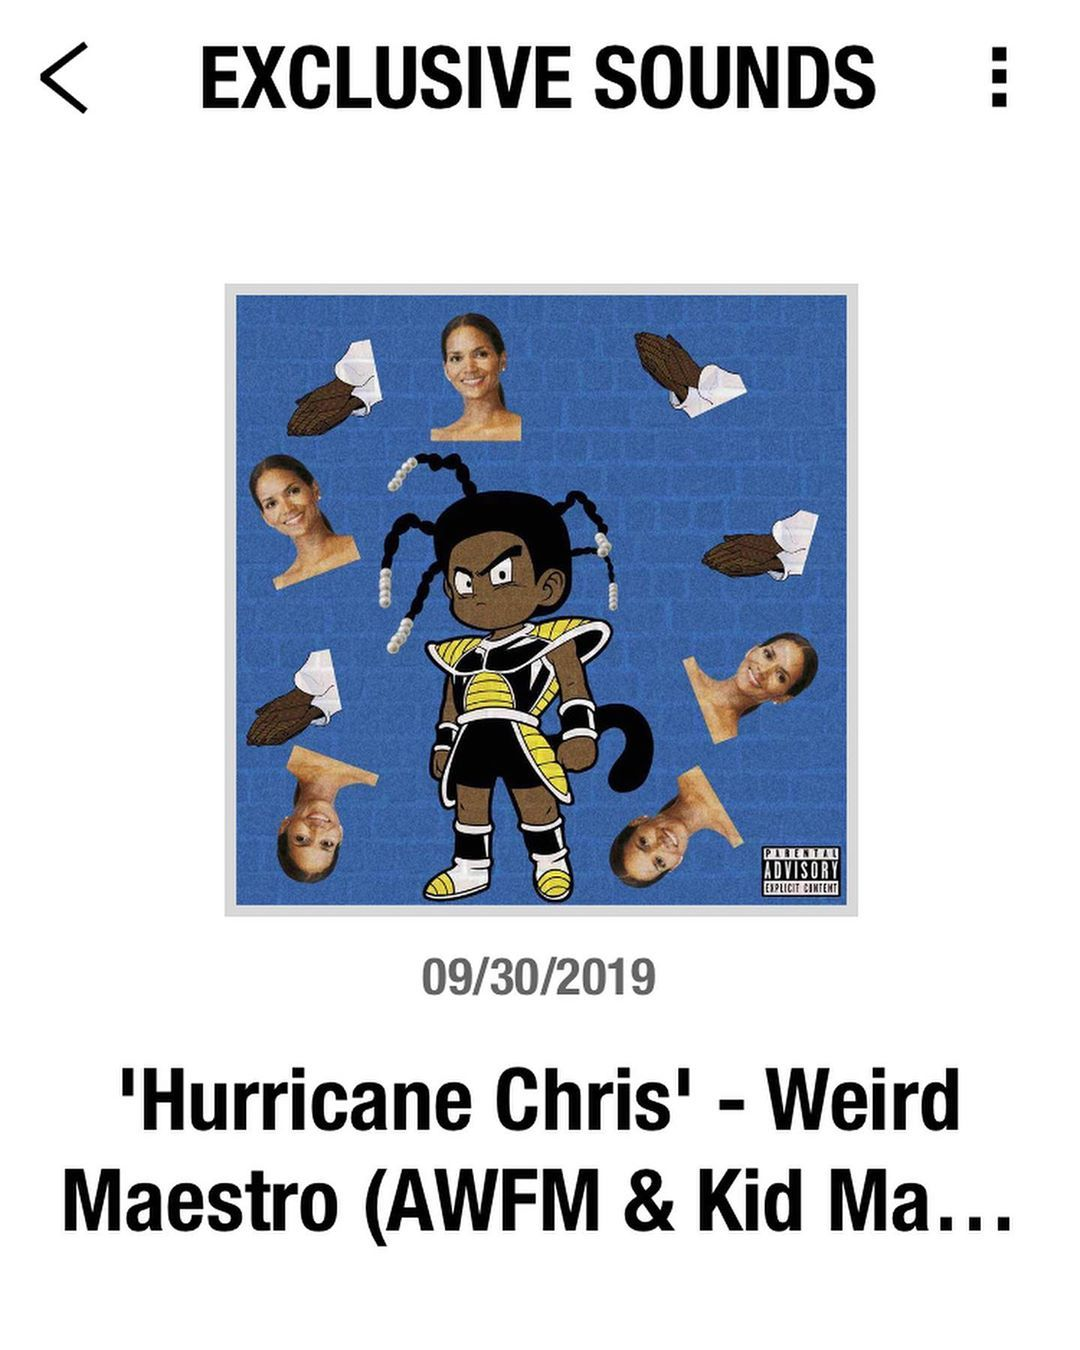 Hurricane Chris Is Now Available To Listen To On The Weareunapologetic World App Exclusive Sounds Section And Sound Cloud Rap Highsnobiety Instagram Posts